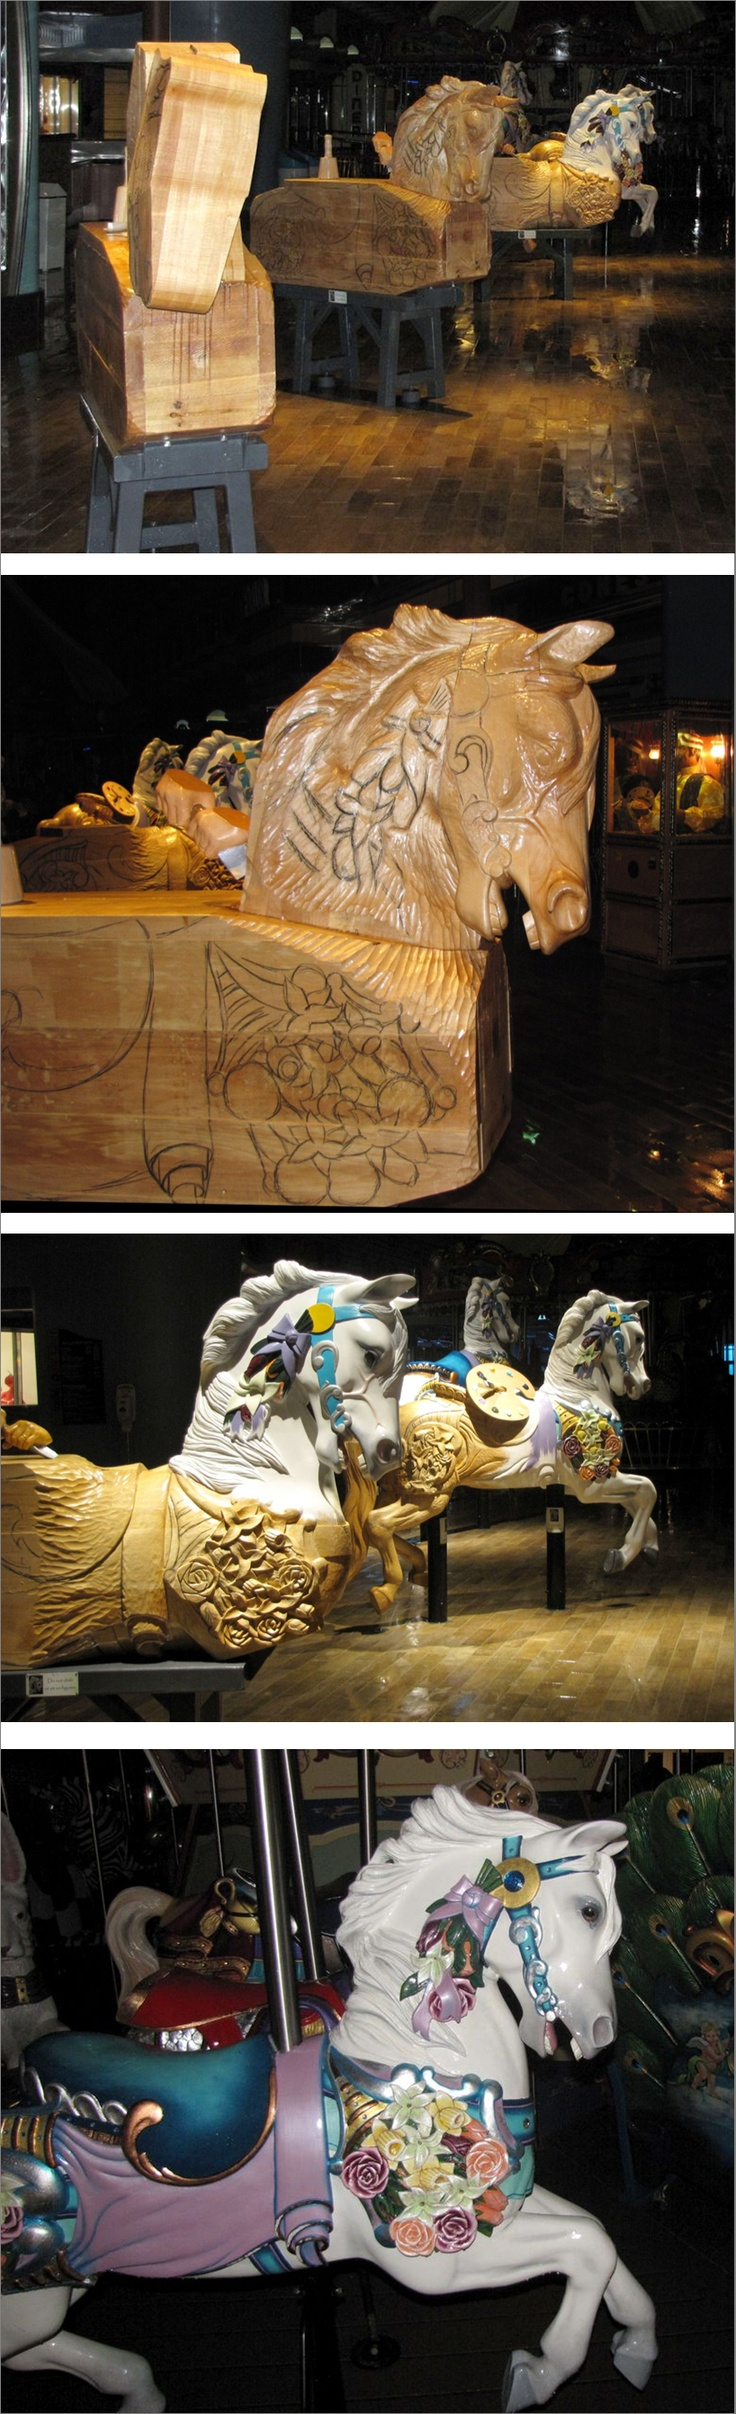 The hand-carved wooden animals in various stages of construction for use on the boardwalk carousel of the cruise ship Oasis of the Seas. It is the first carousel to ever operate at sea.